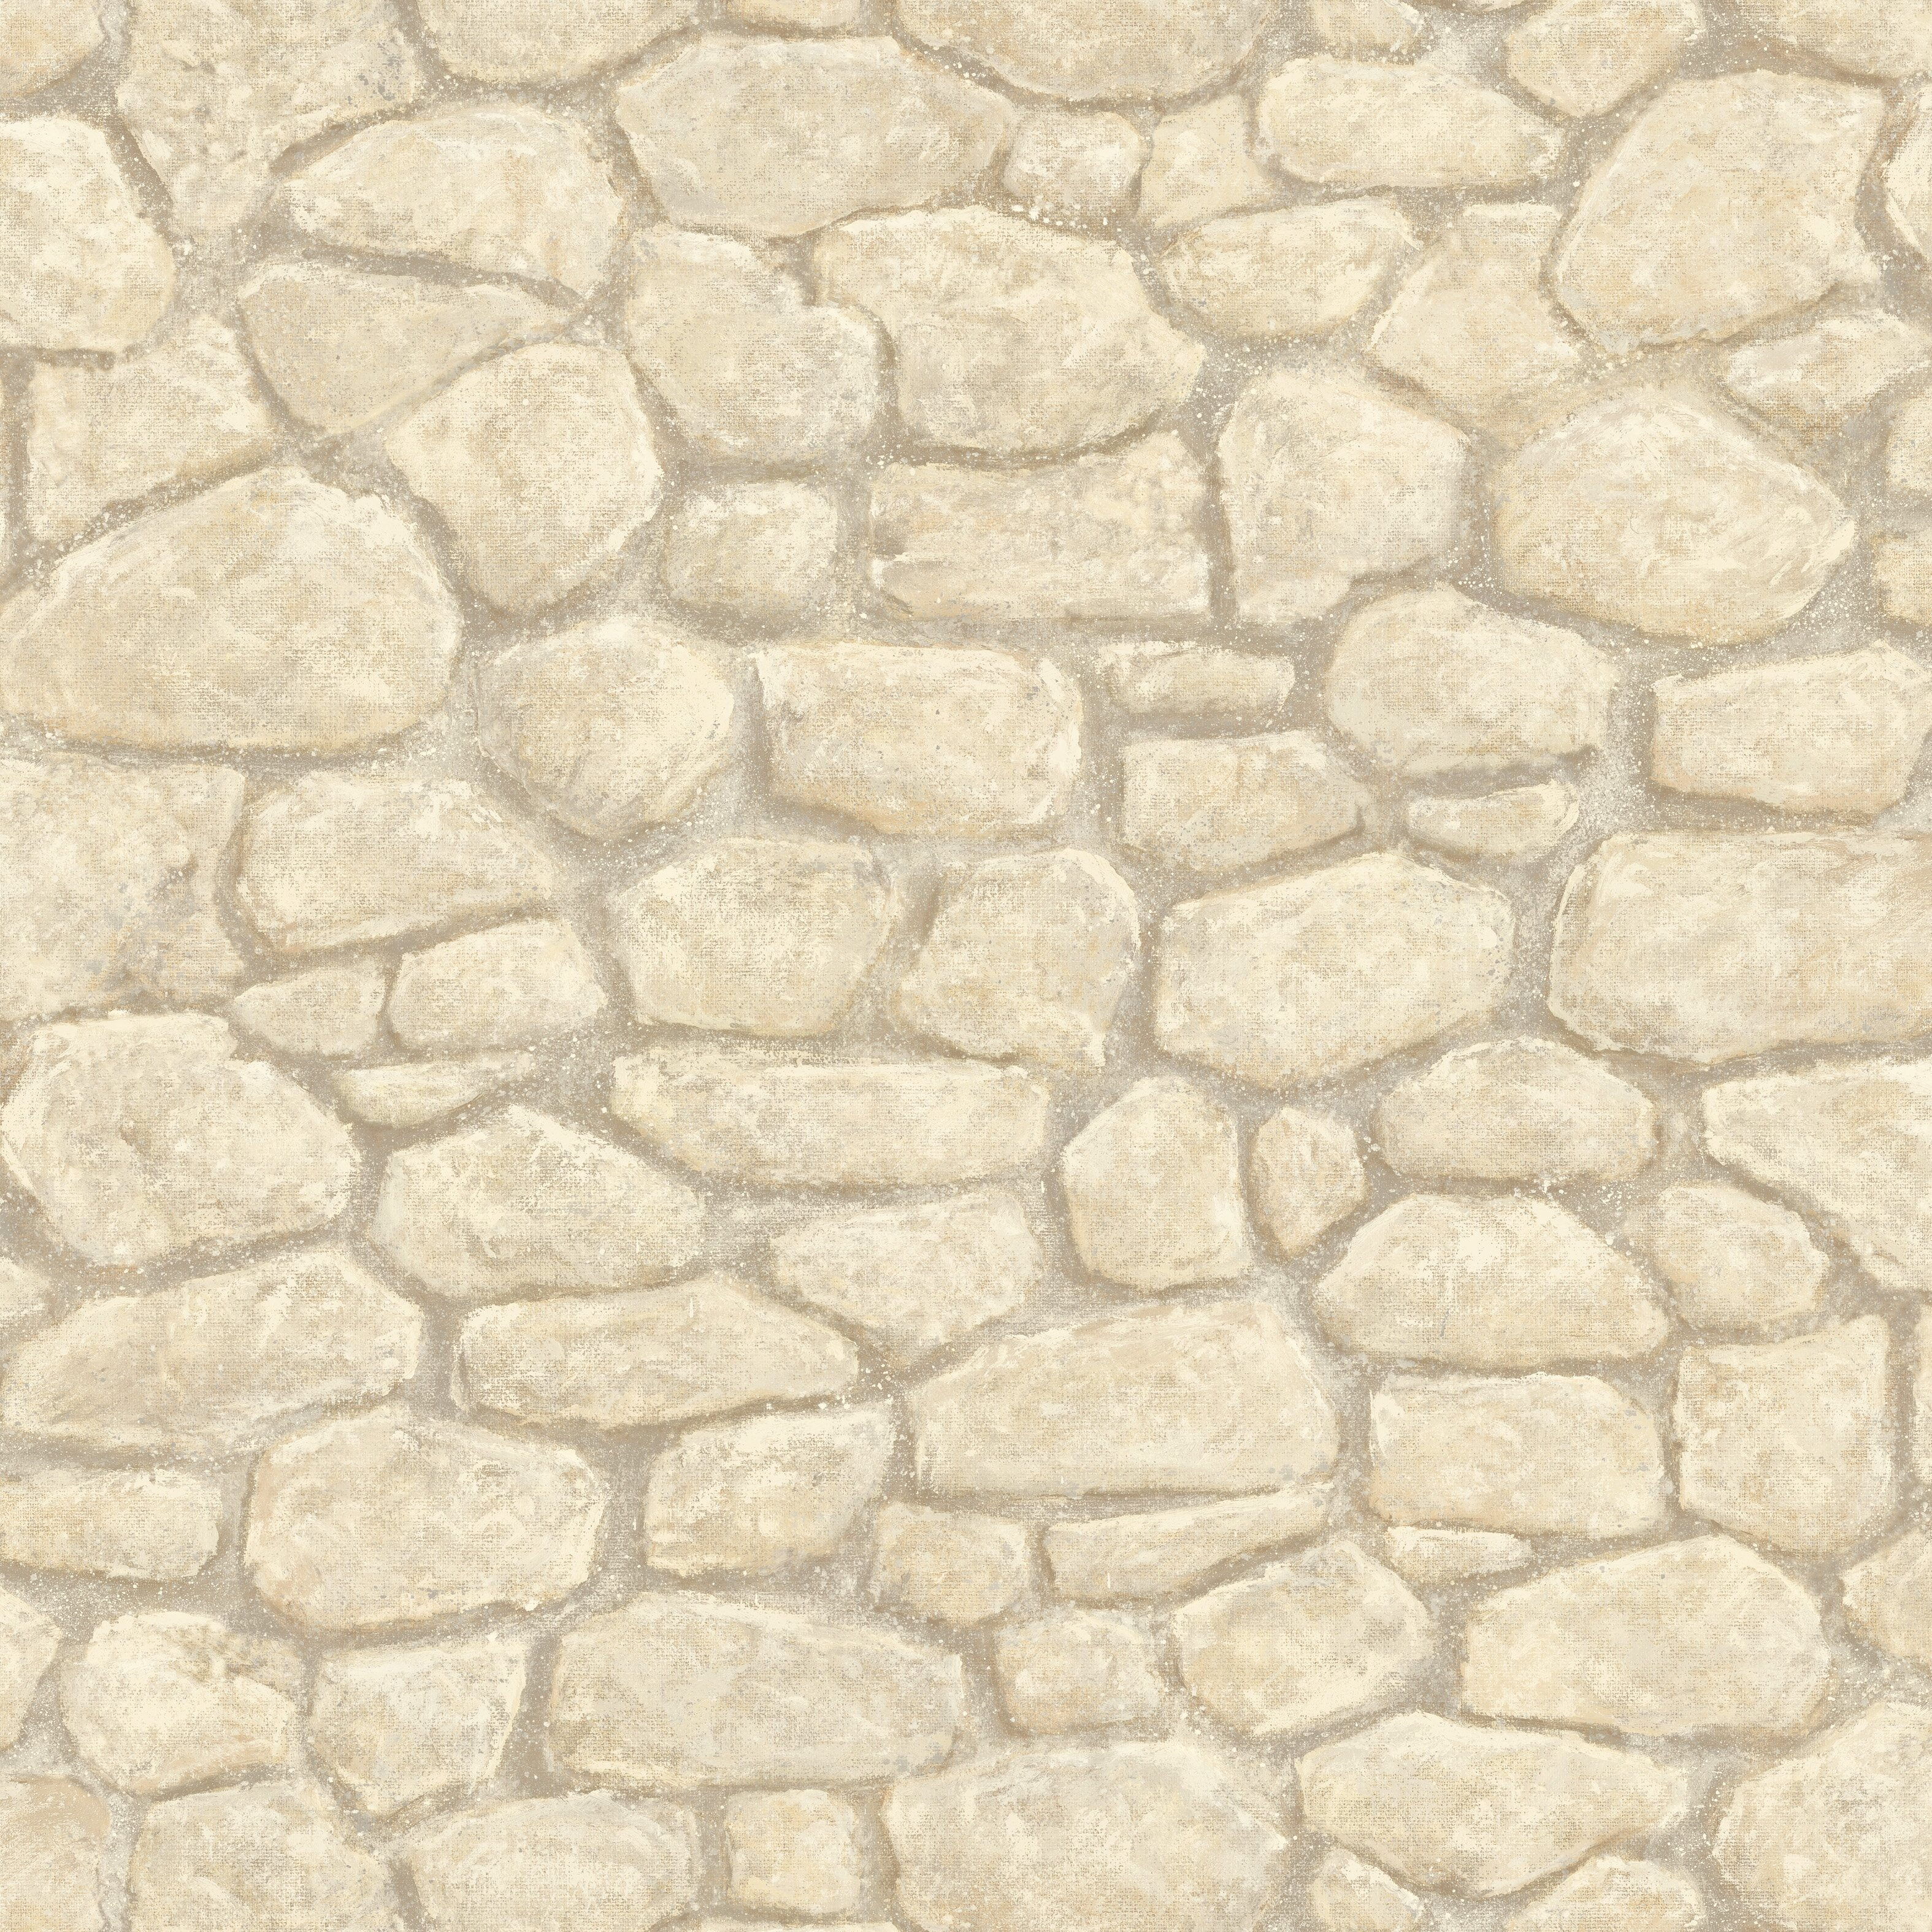 Outdoors gretel boundary wall 33 39 x 20 5 stone 3d for Boundary wall cost calculator